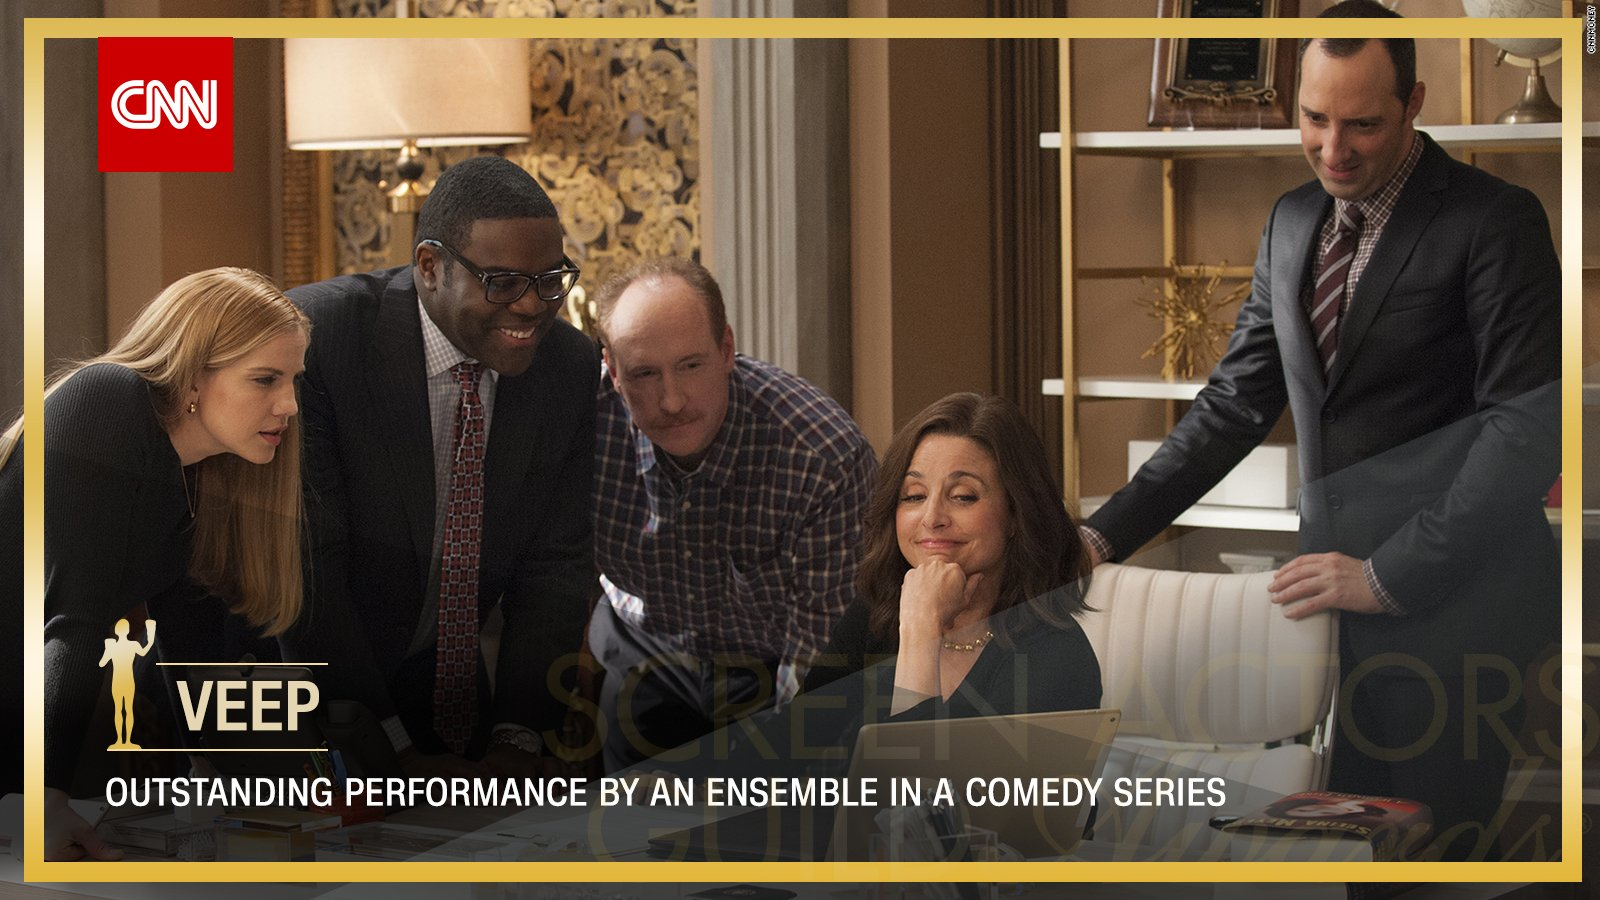 'Veep' wins Outstanding Performance by an Ensemble in a Comedy Series. https://t.co/cPly9Wzl8b #SAGAwards https://t.co/1oJ7HDaNpU